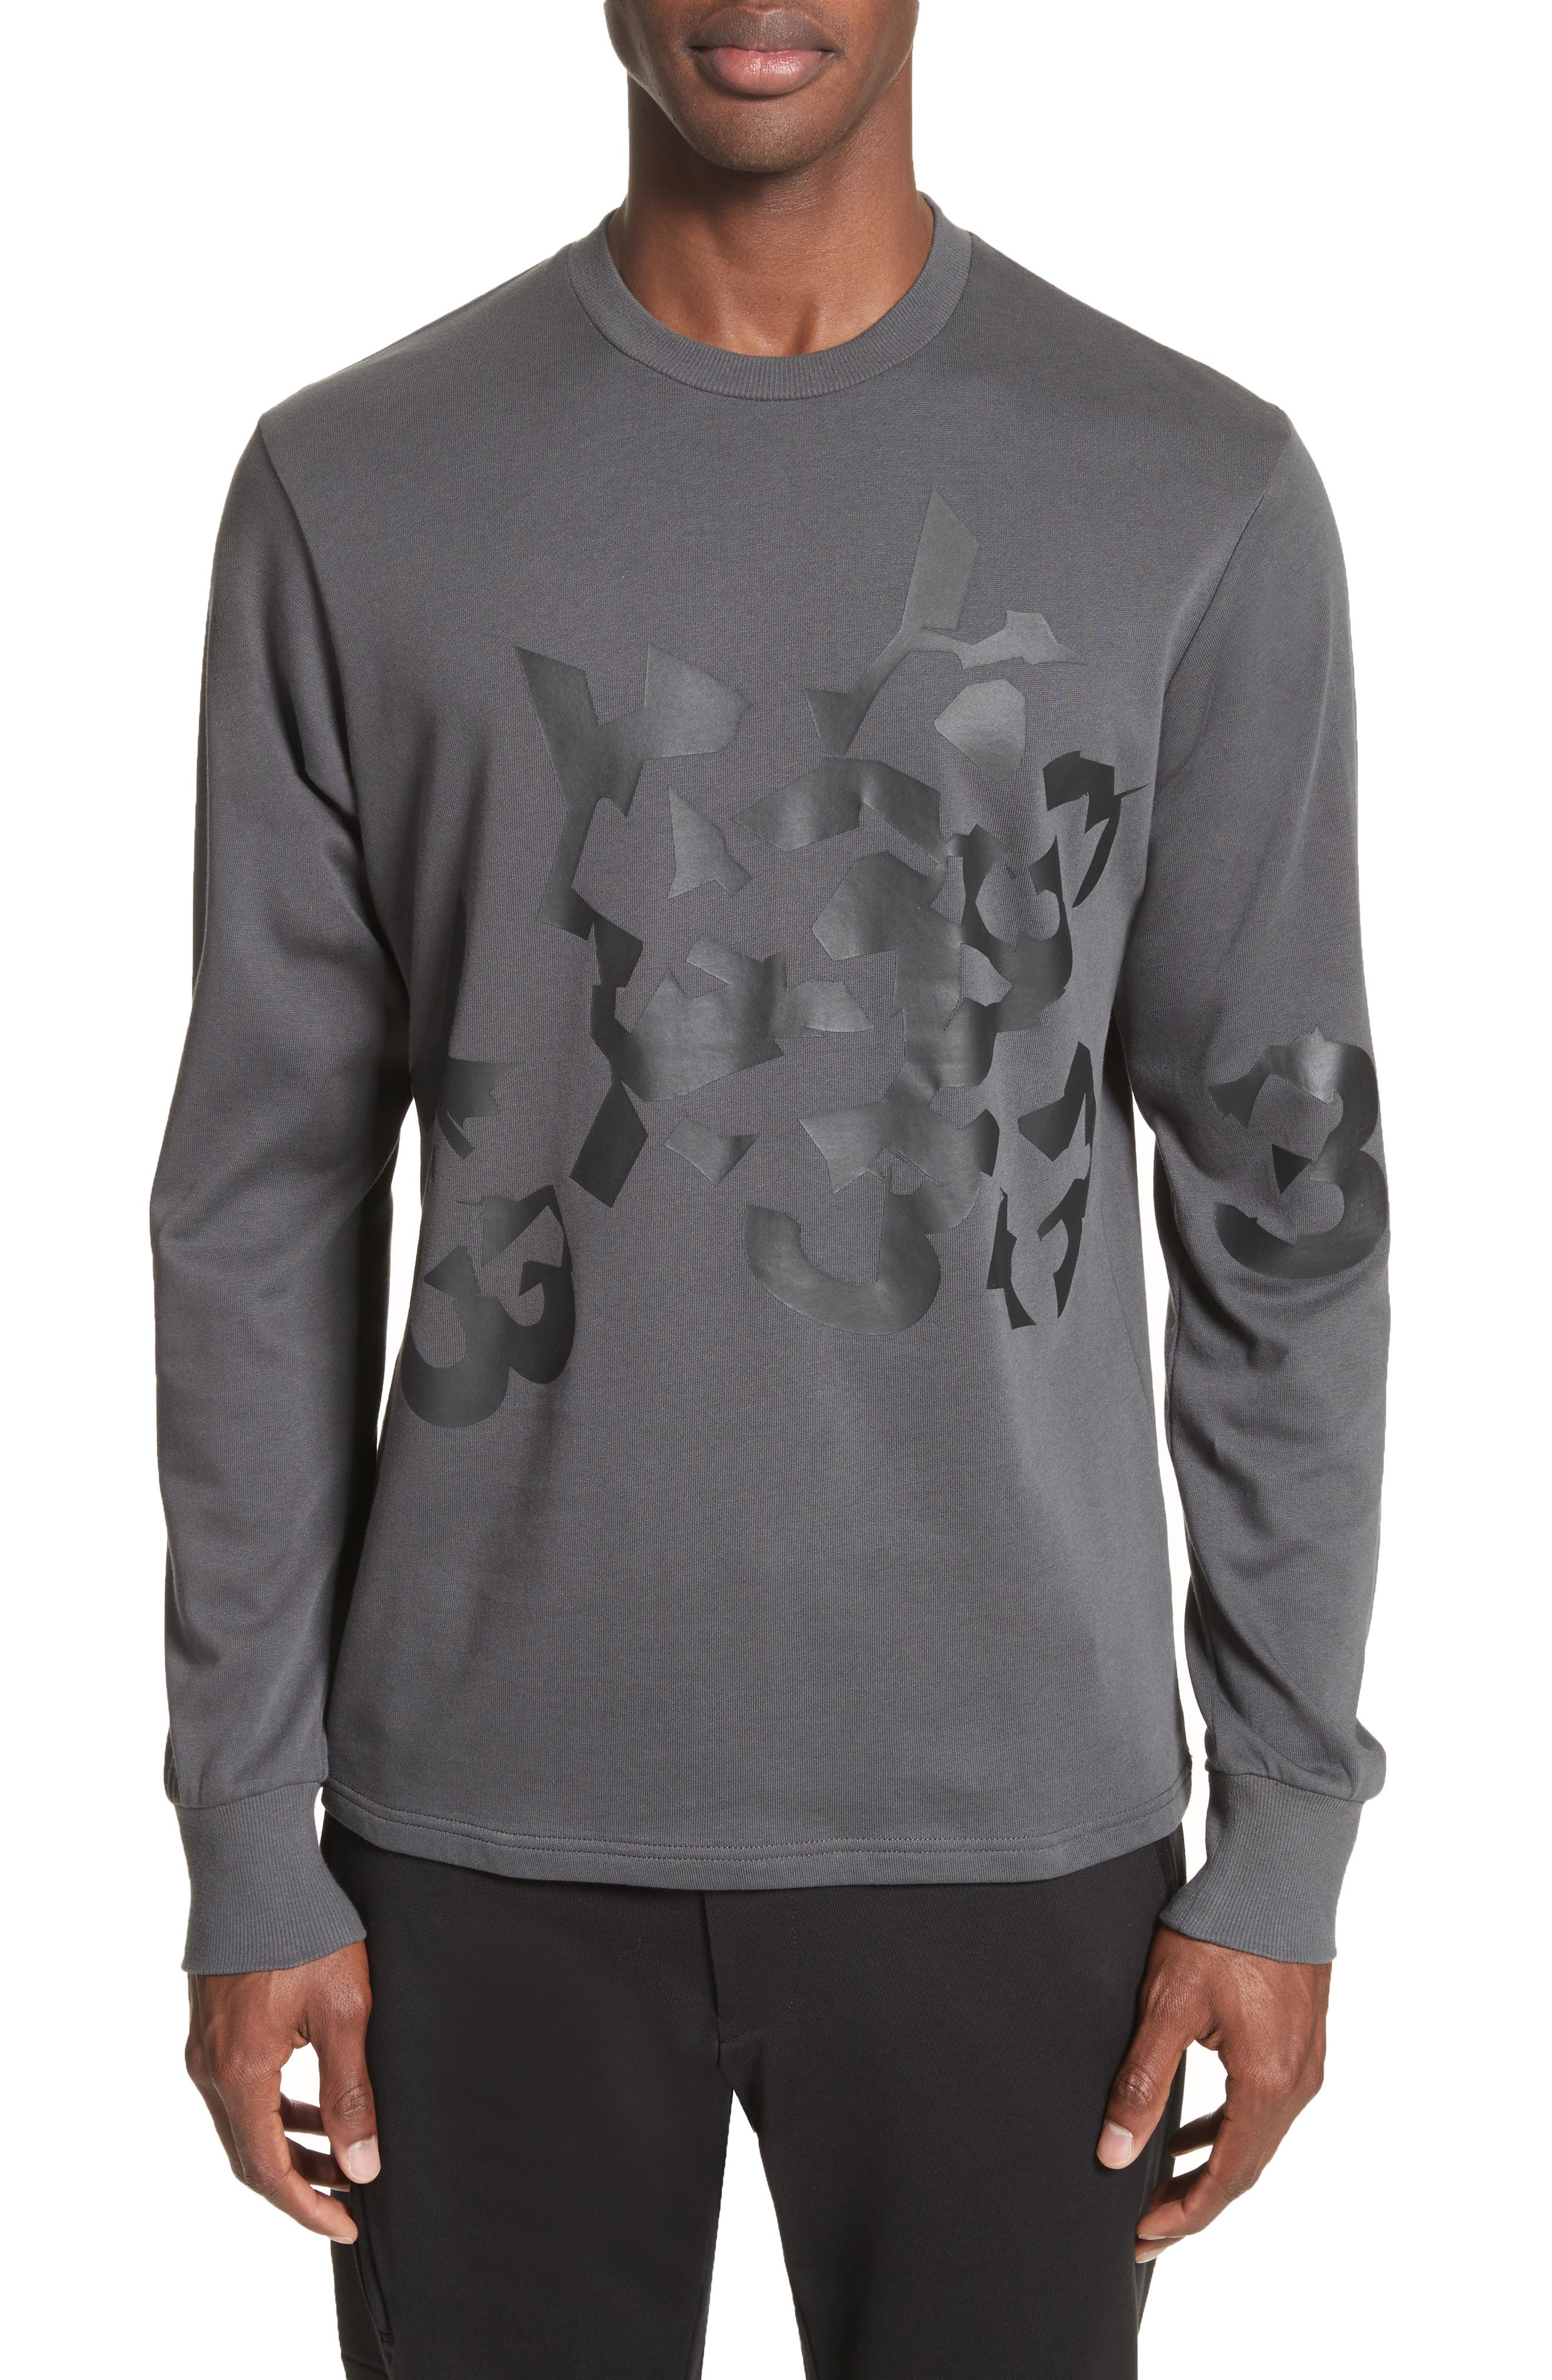 Y-3 Graphic Long Sleeve T-Shirt